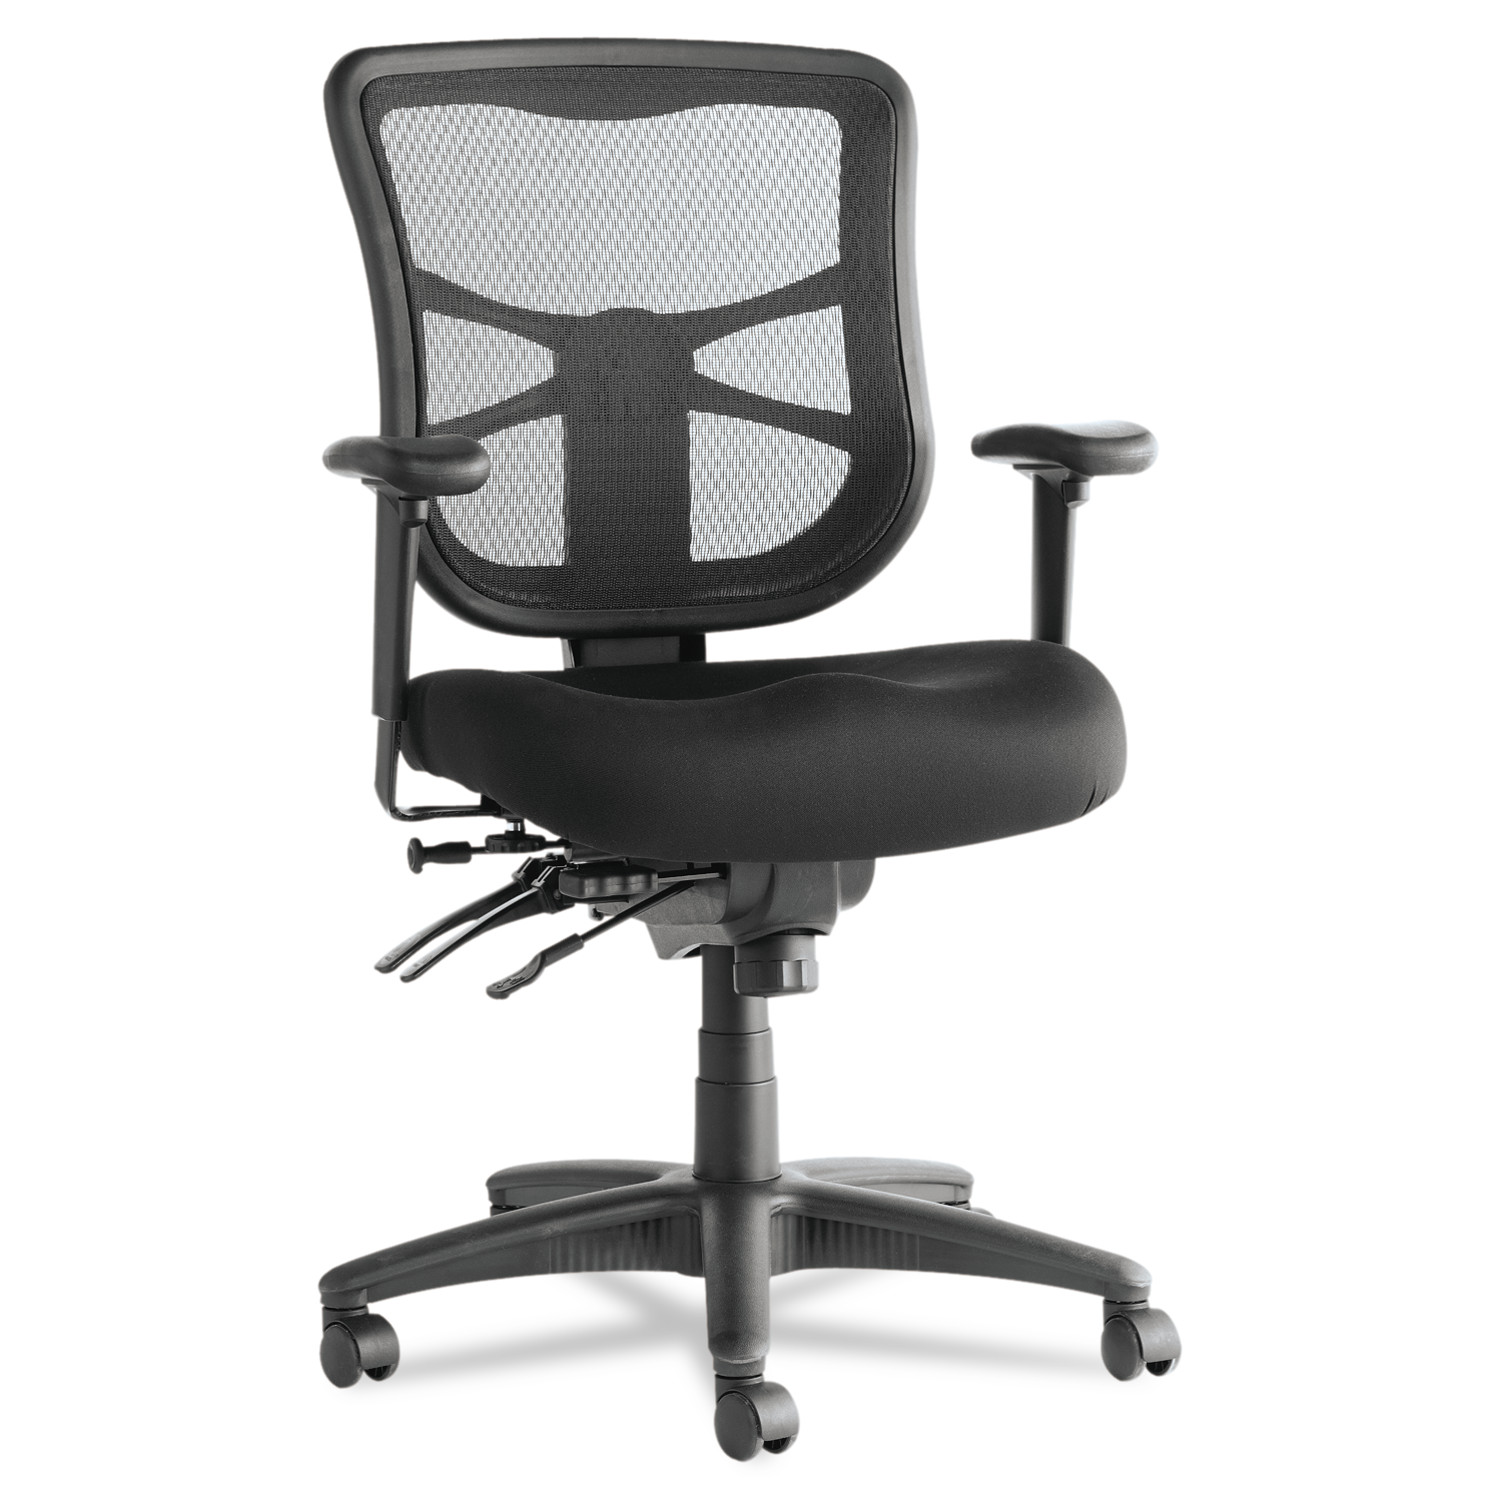 Alera Alera Elusion Series Mesh Mid-Back Multifunction Chair, Black